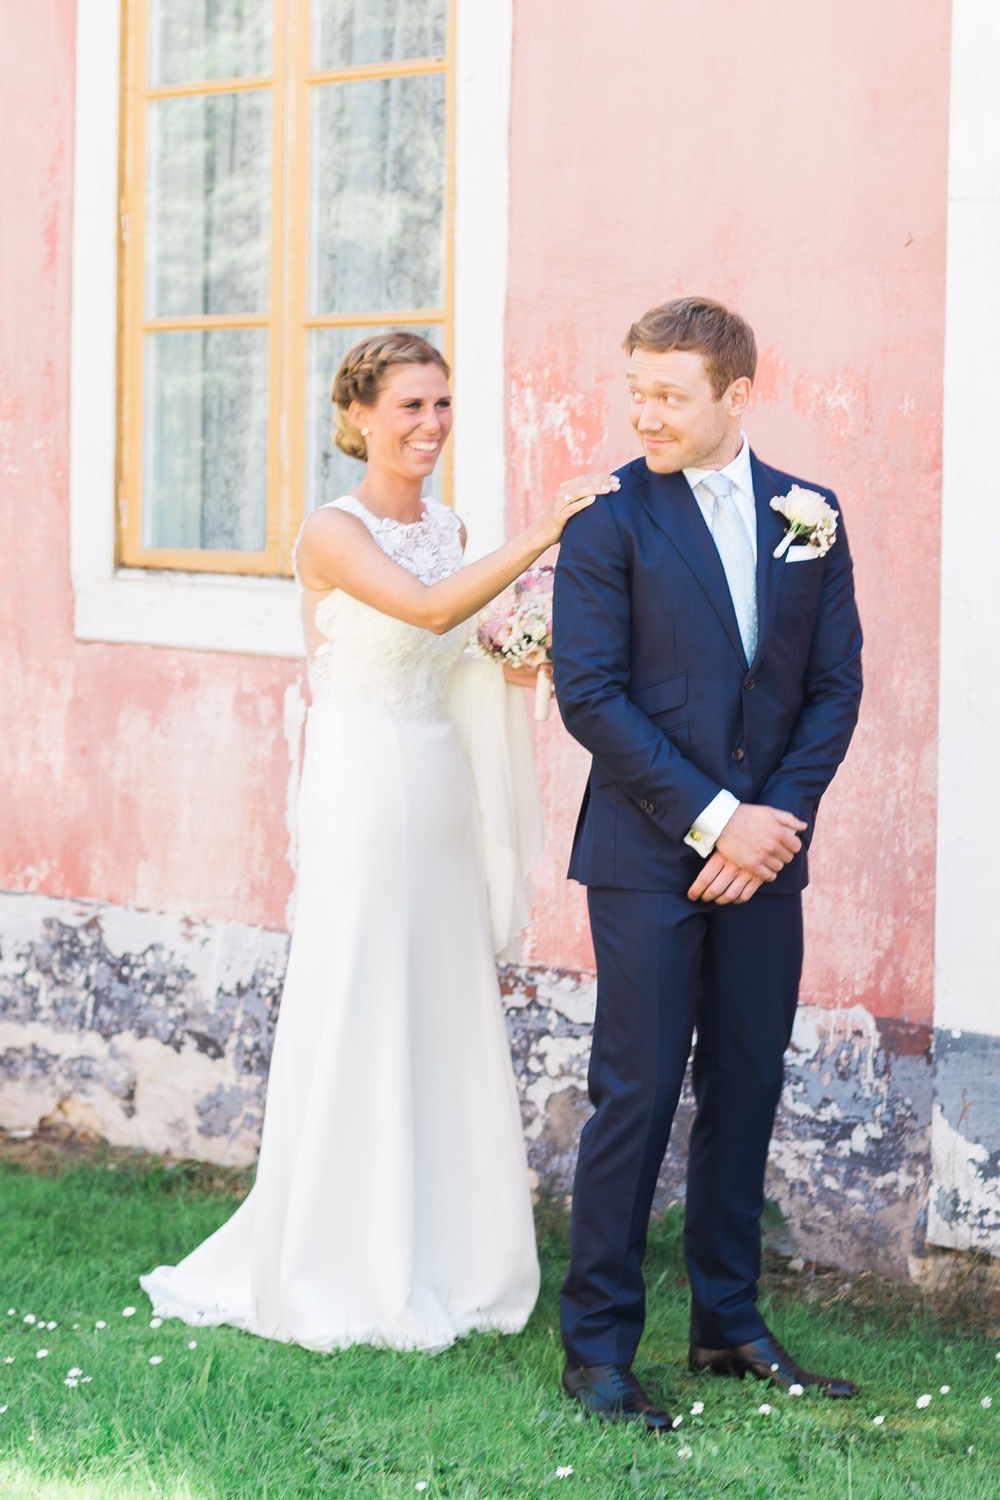 elegant swedish wedding by emelie petre22